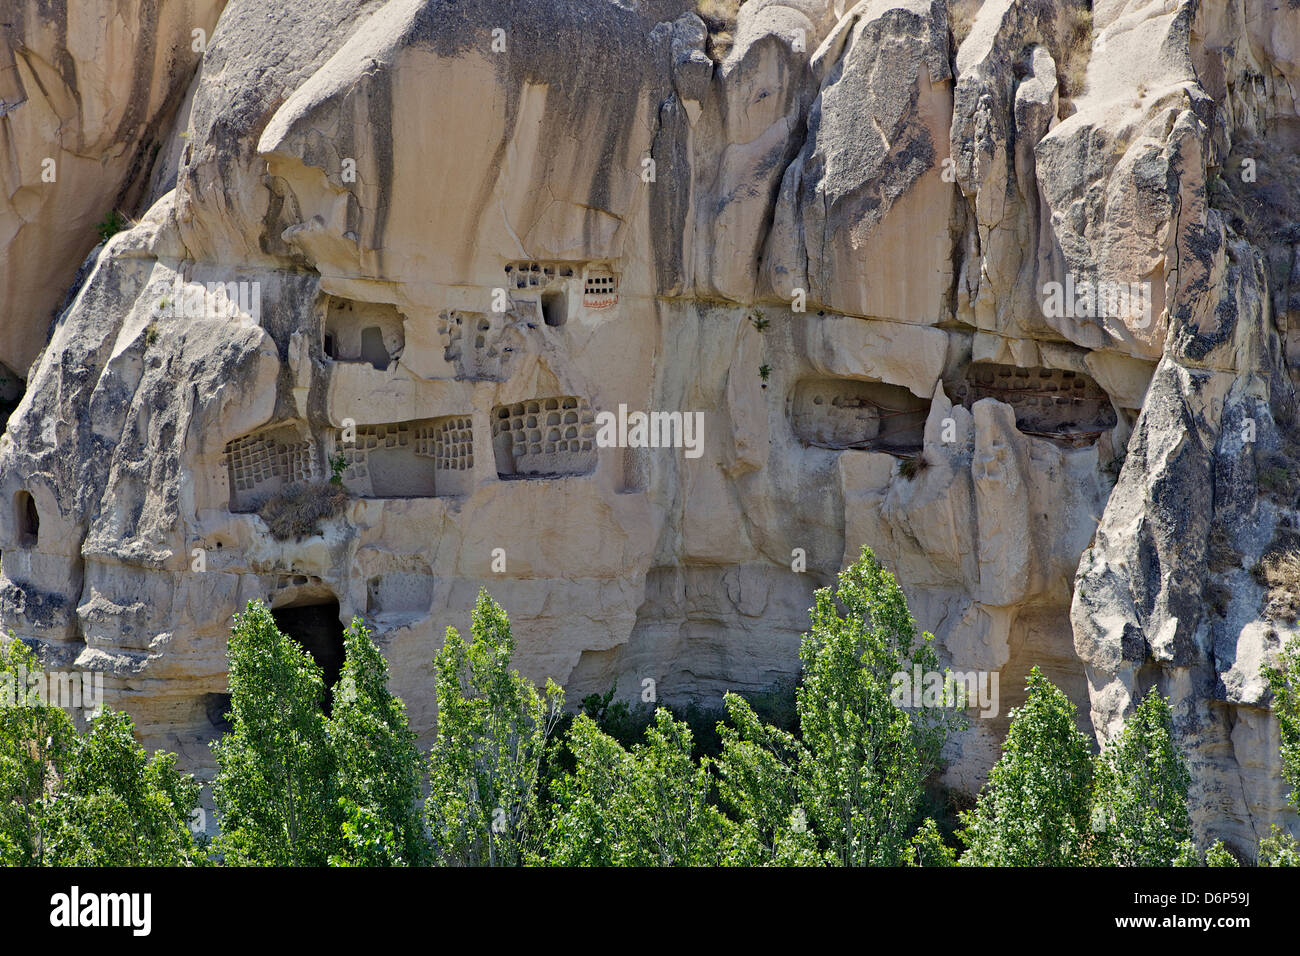 Rock houses, houses carved into the rocks, Goreme, Cappadocia, Anatolia, Turkey, Asia Minor, Eurasia Stock Photo